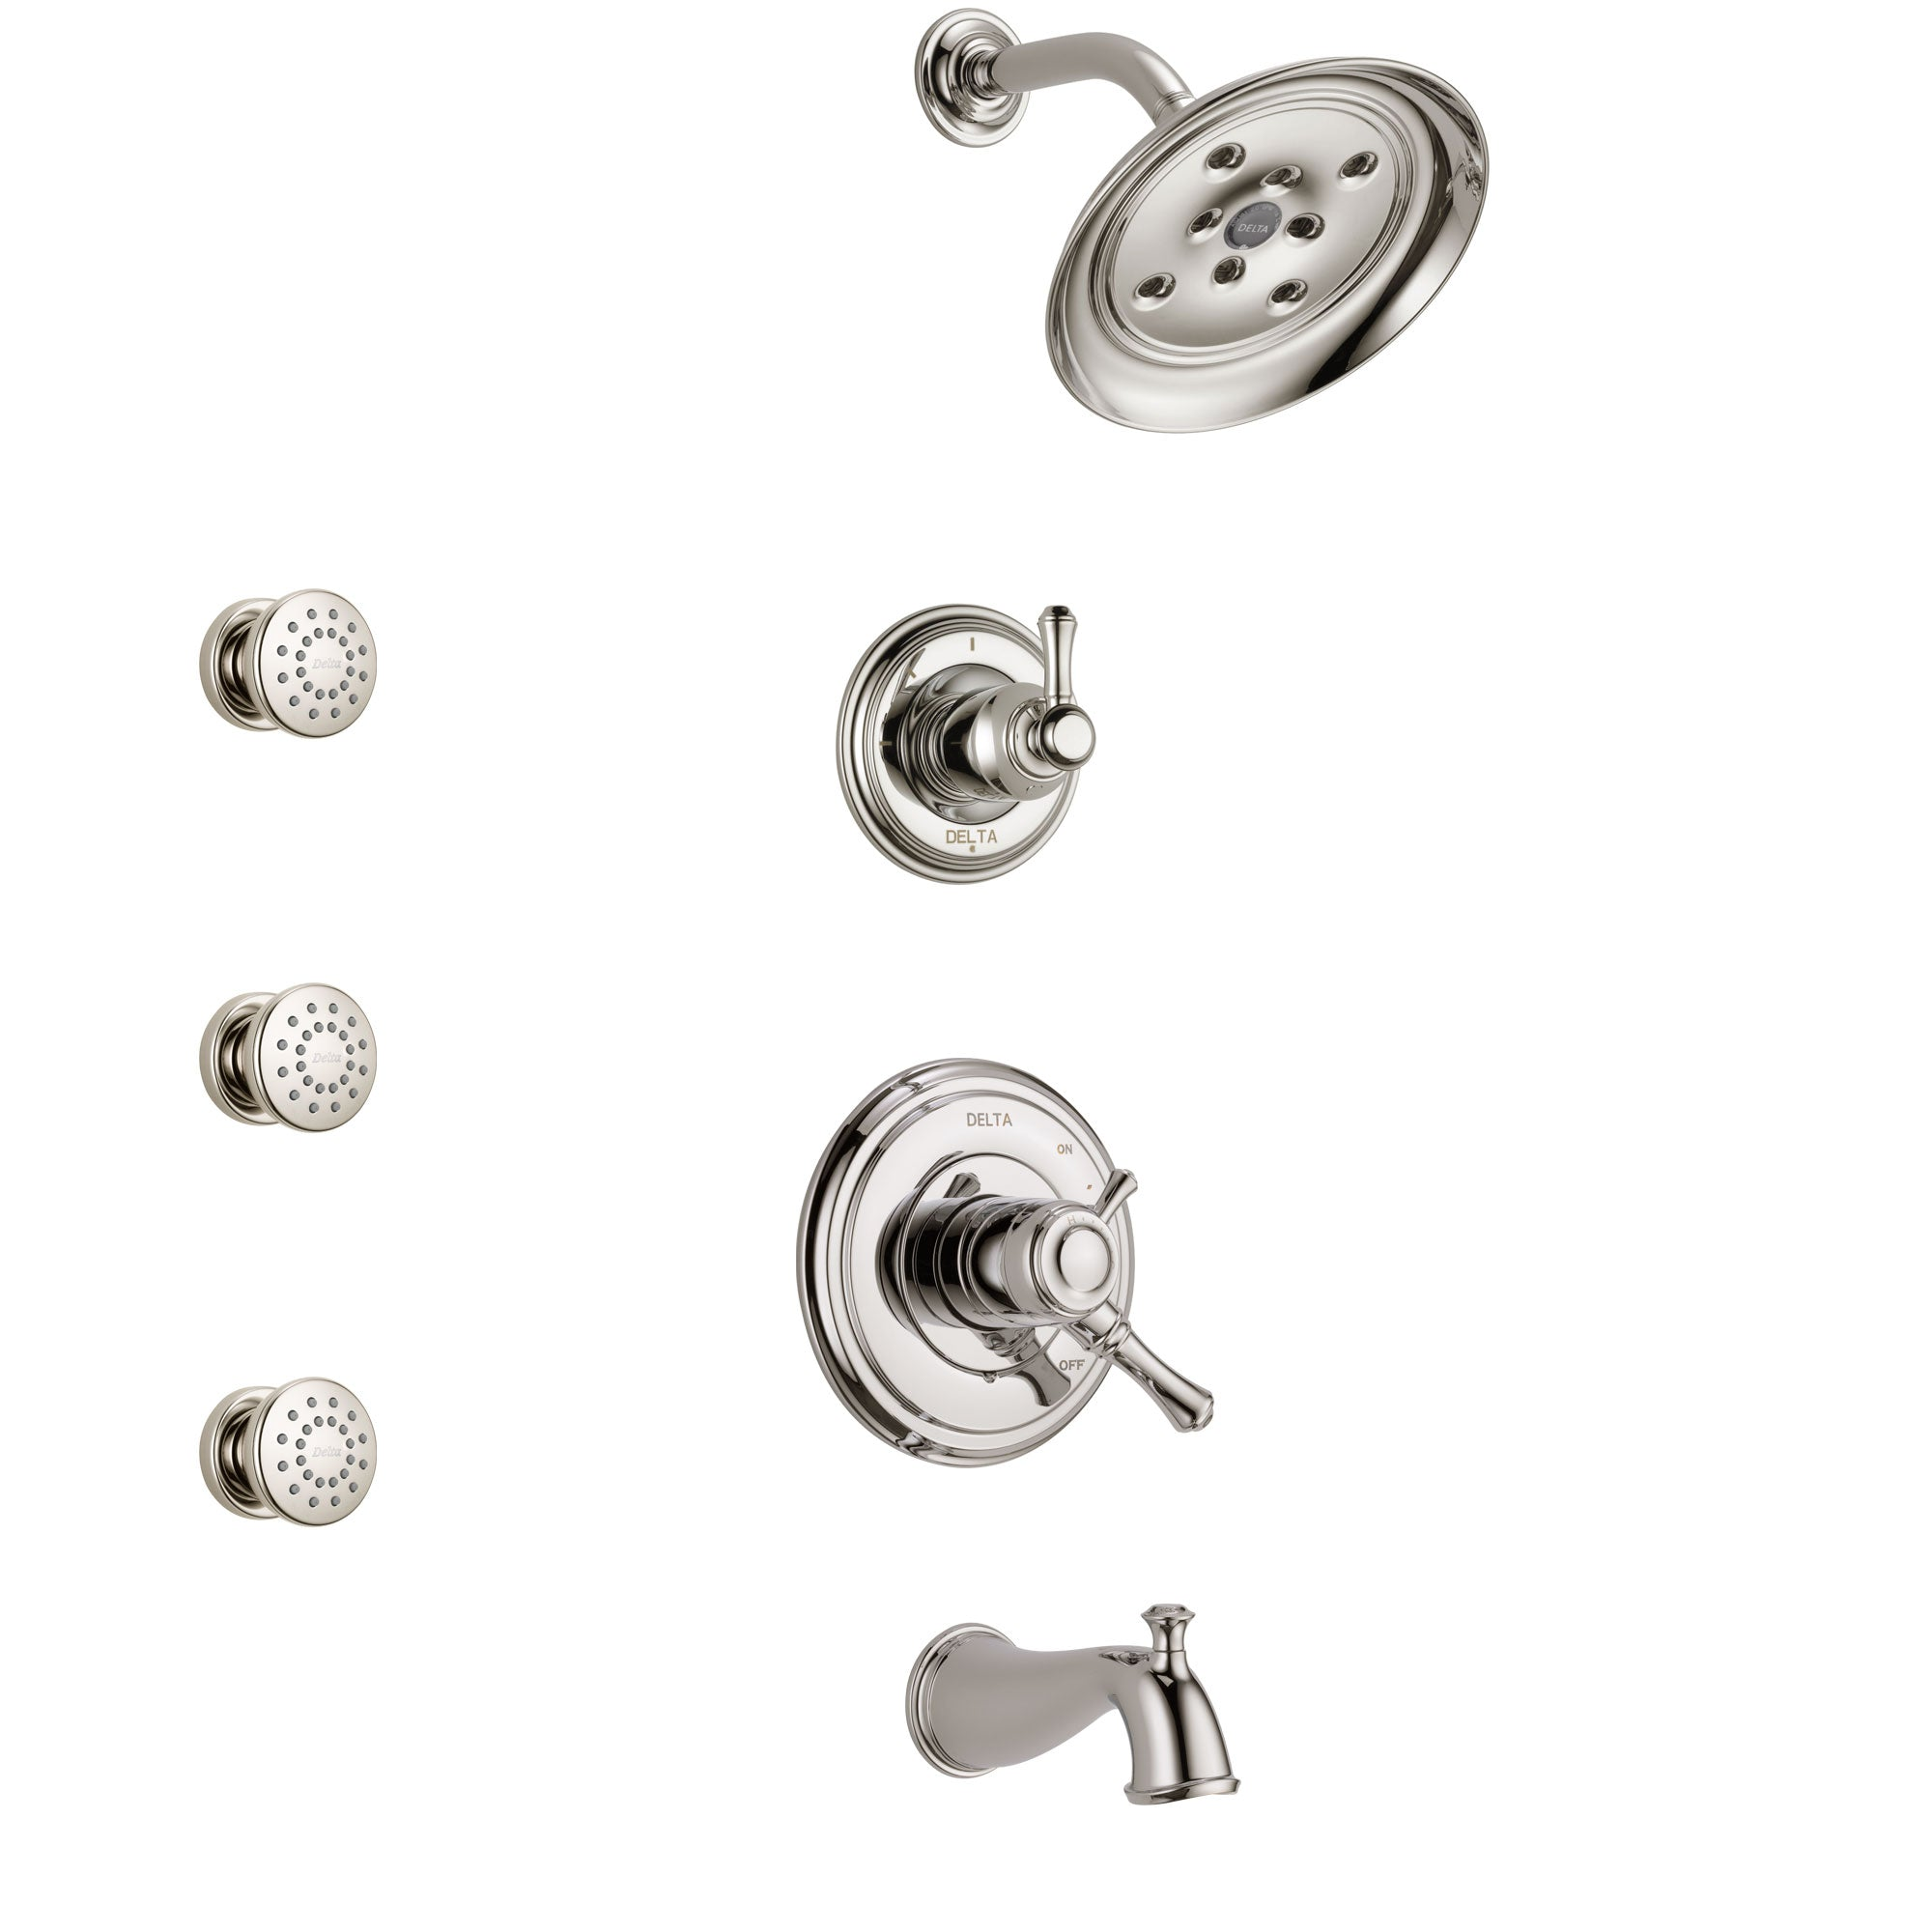 Delta Cassidy Polished Nickel Finish Tub and Shower System with Dual Control Handle, 3-Setting Diverter, Showerhead, and 3 Body Sprays SS17497PN1